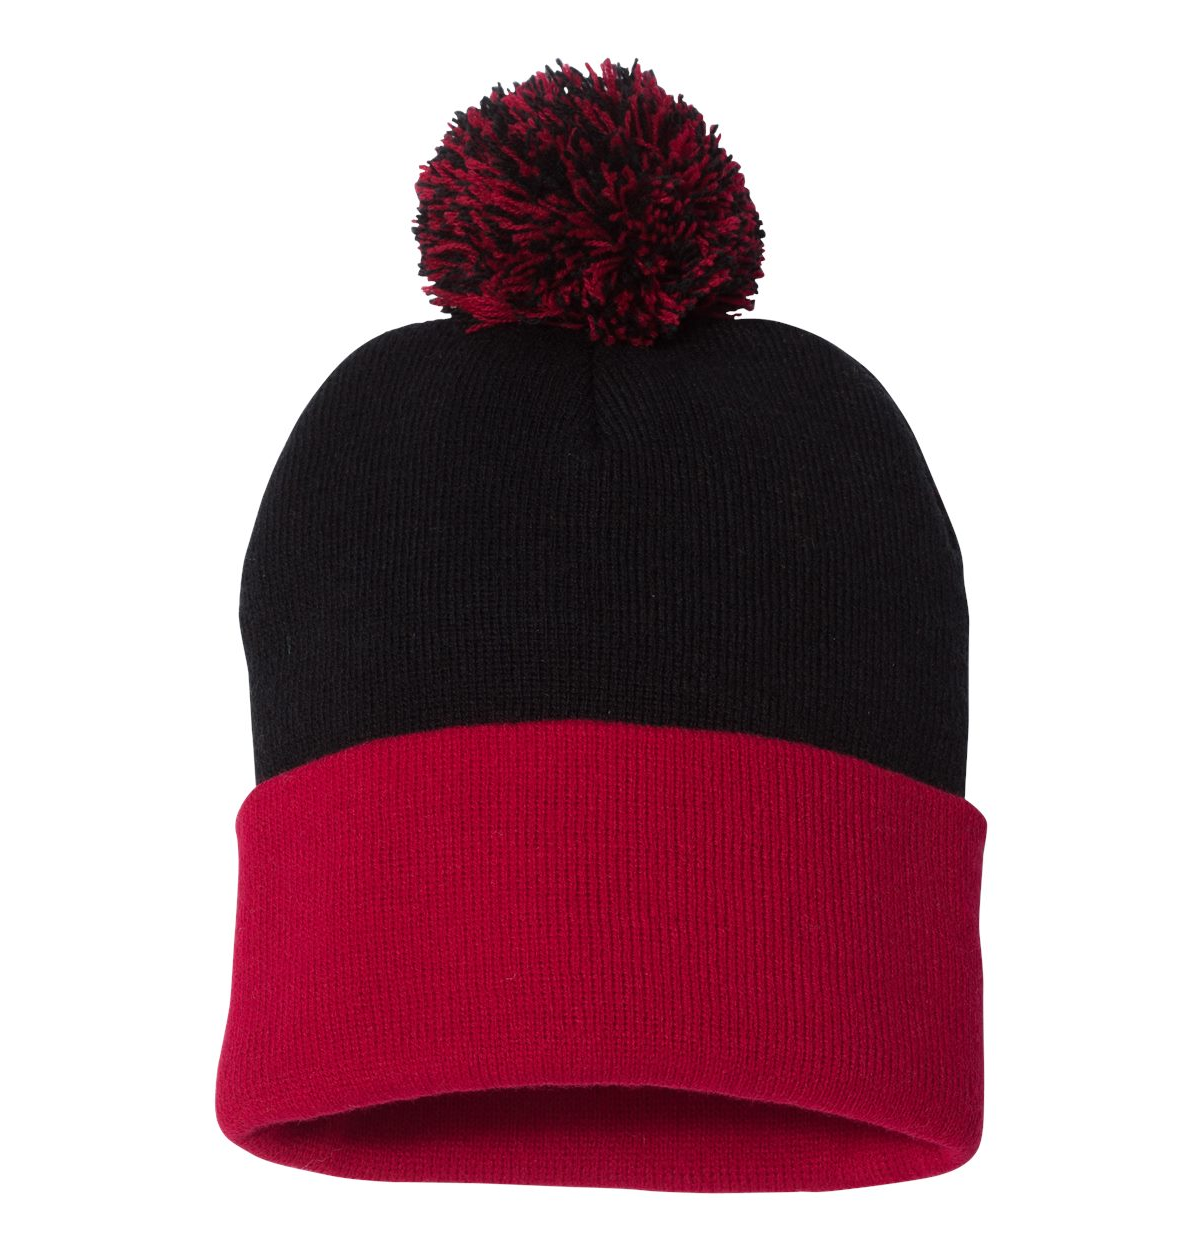 Red/Black Beanie